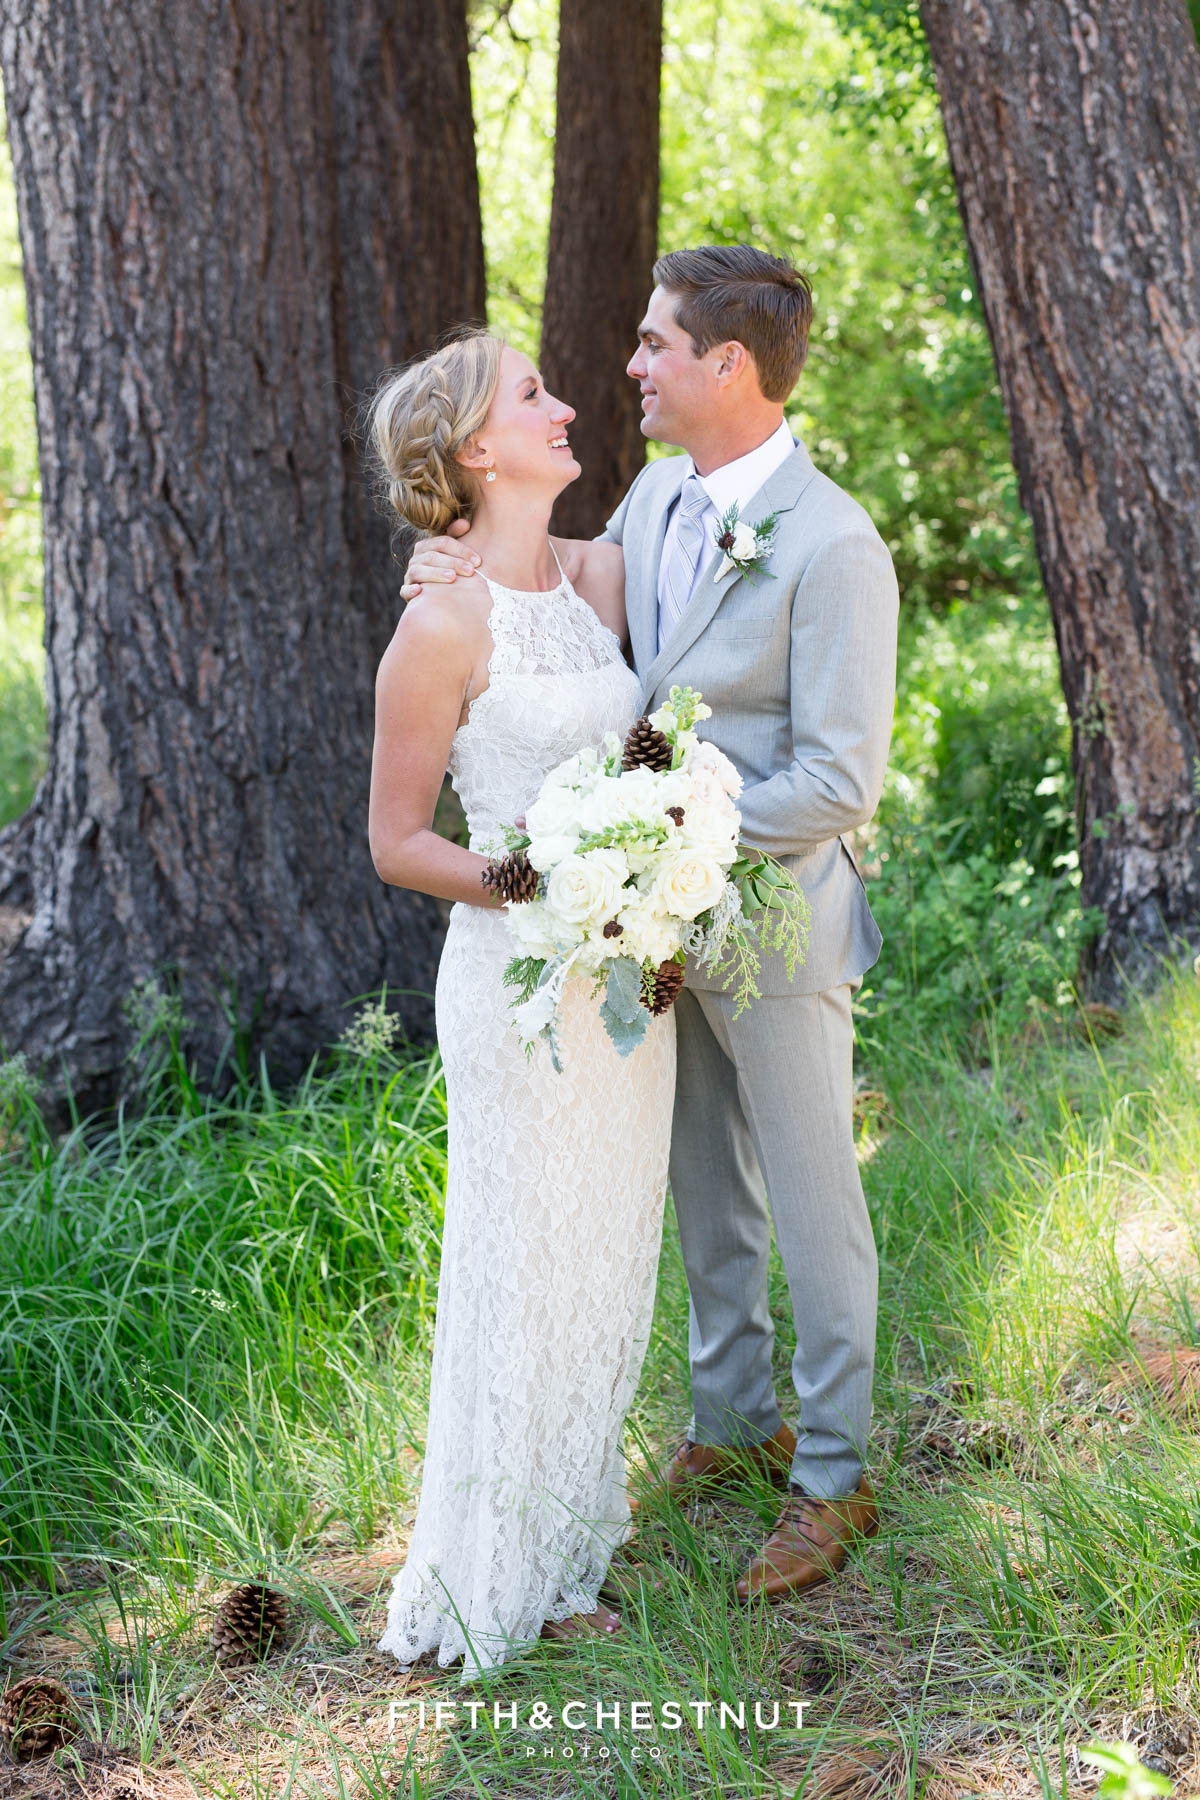 zephyr cove bride and groom look at one another lovingly for portraits by Lake Tahoe wedding photographer